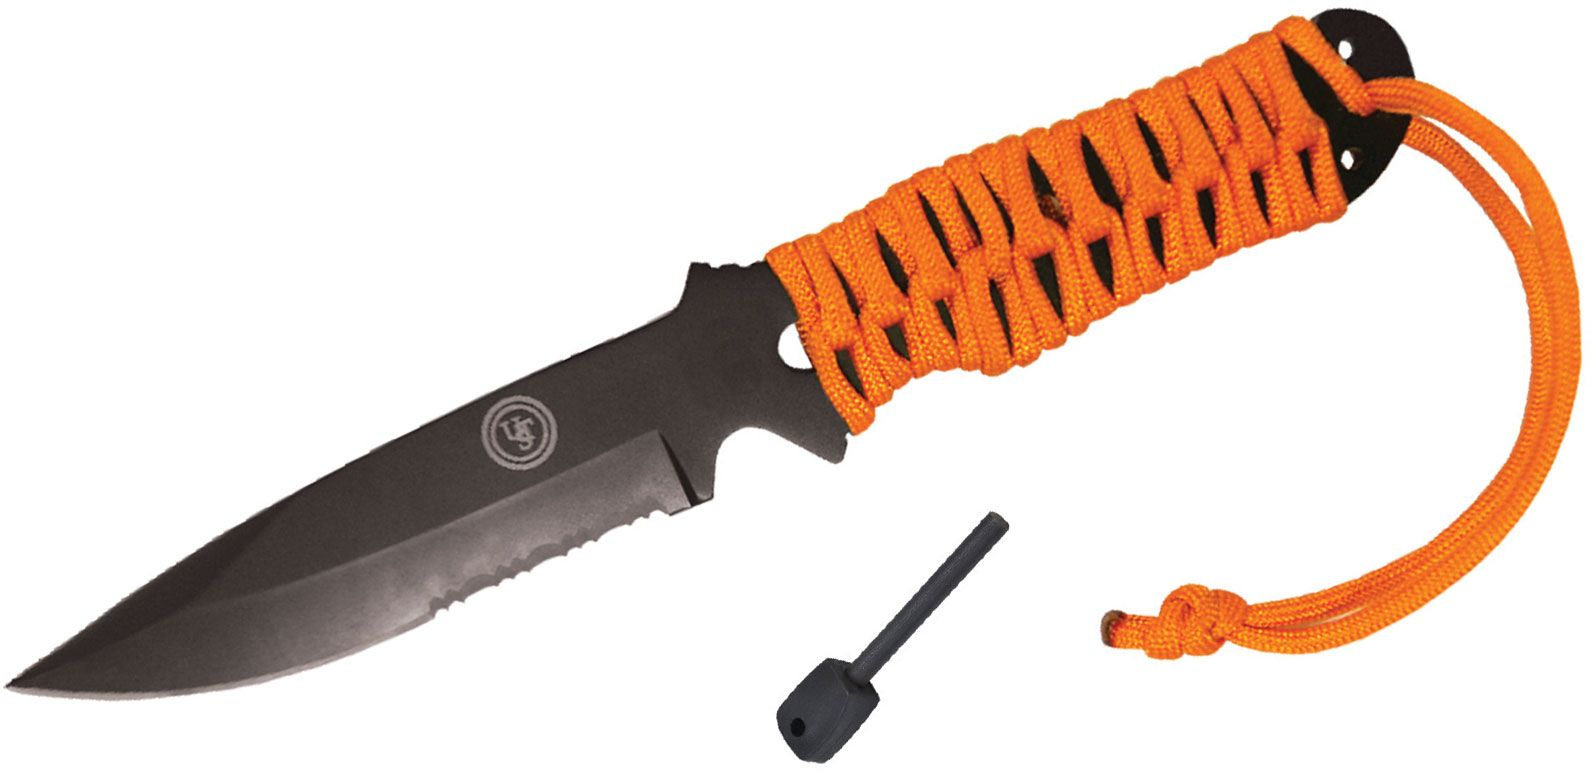 UST Ultimate Survival ParaKnife FS 4.0 Fixed 4 inch Black Combo Blade, Fire Starter, Orange Paracord Wrapped Handle, Black Nylon Sheath